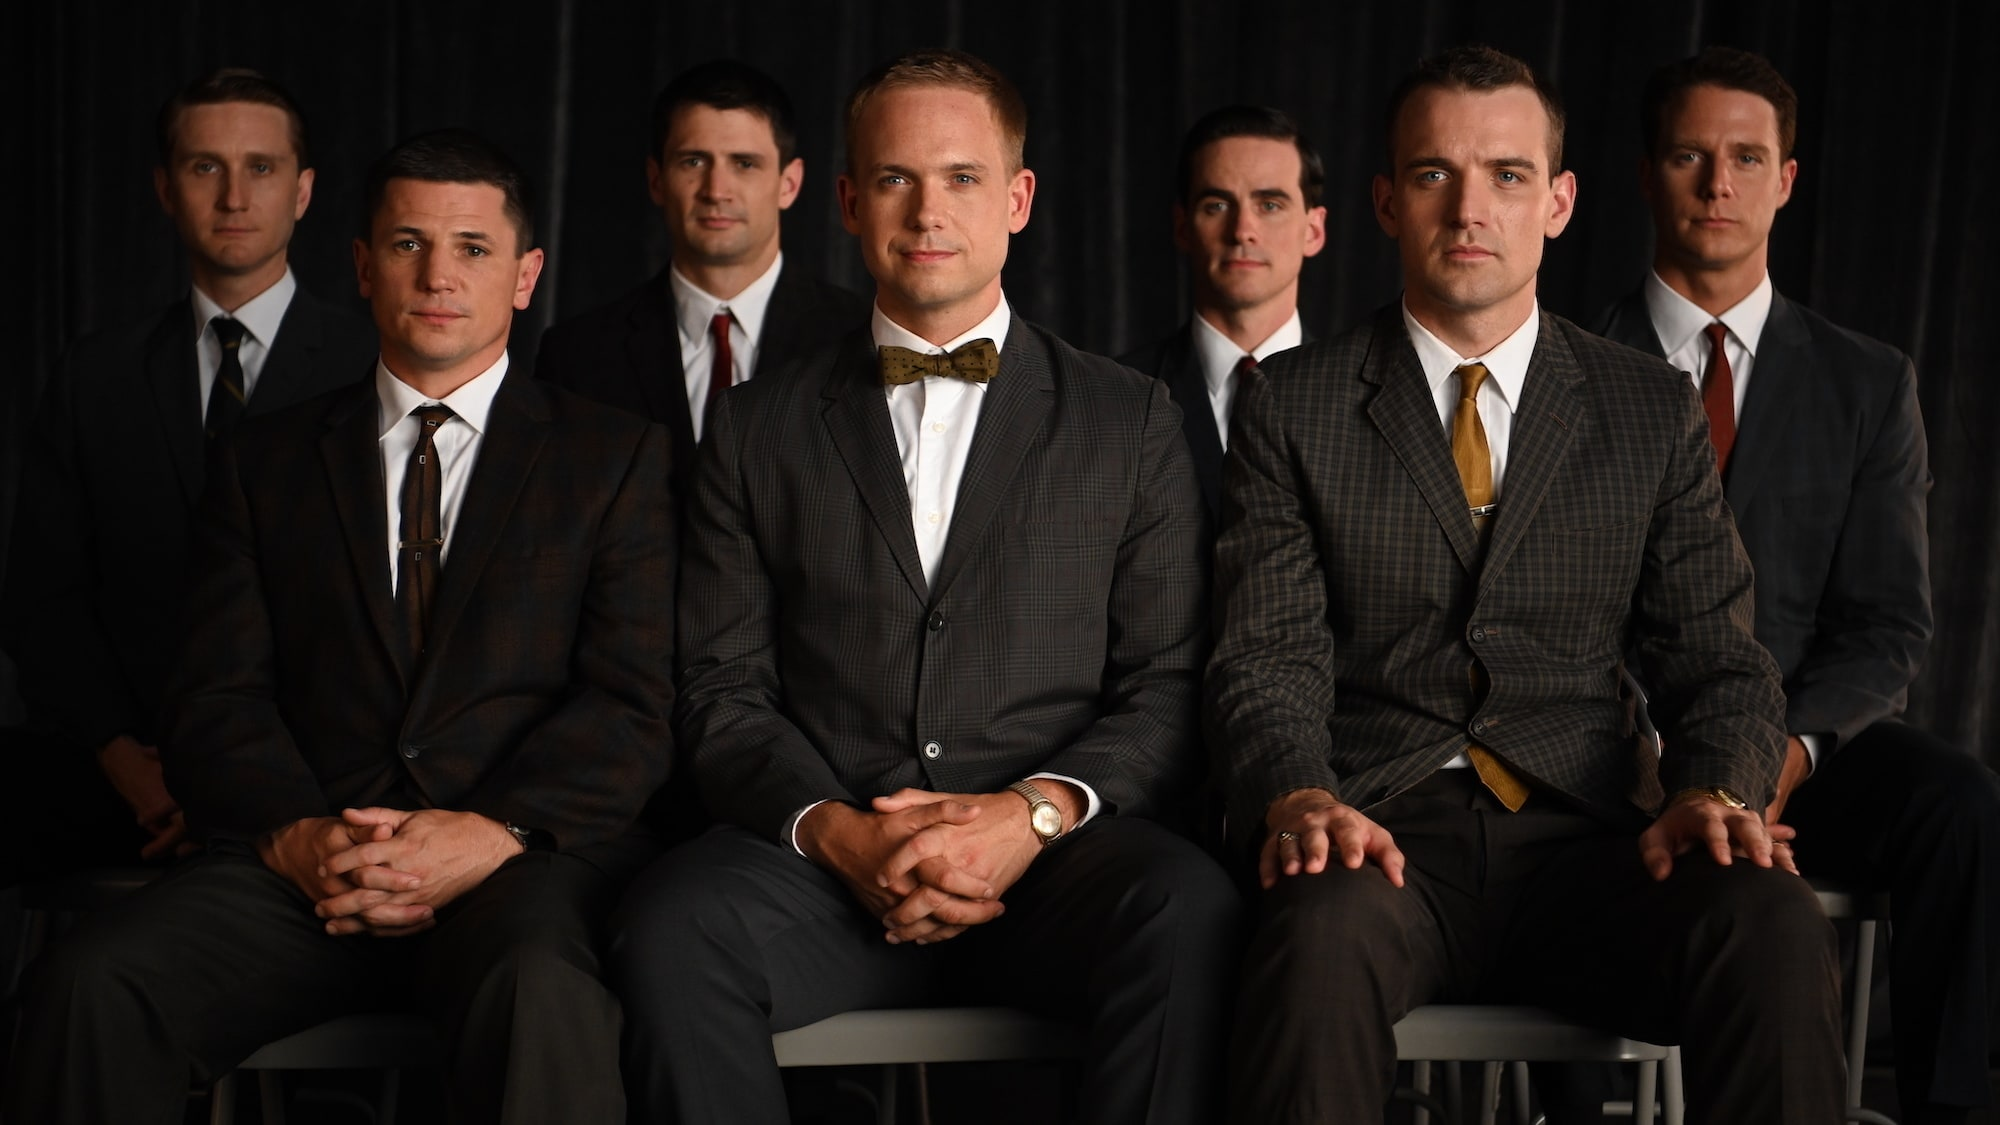 Back left to right: Aaron Staton as Wally Schirra, James Lafferty as Scott Carpenter, Colin O'Donoghue as Gordon Cooper, Jake McDorman as Alan Shepard. Front left to right: Michael Trotter as Gus Grissom, Patrick J. Adams as John Glenn and Micah Stock as D